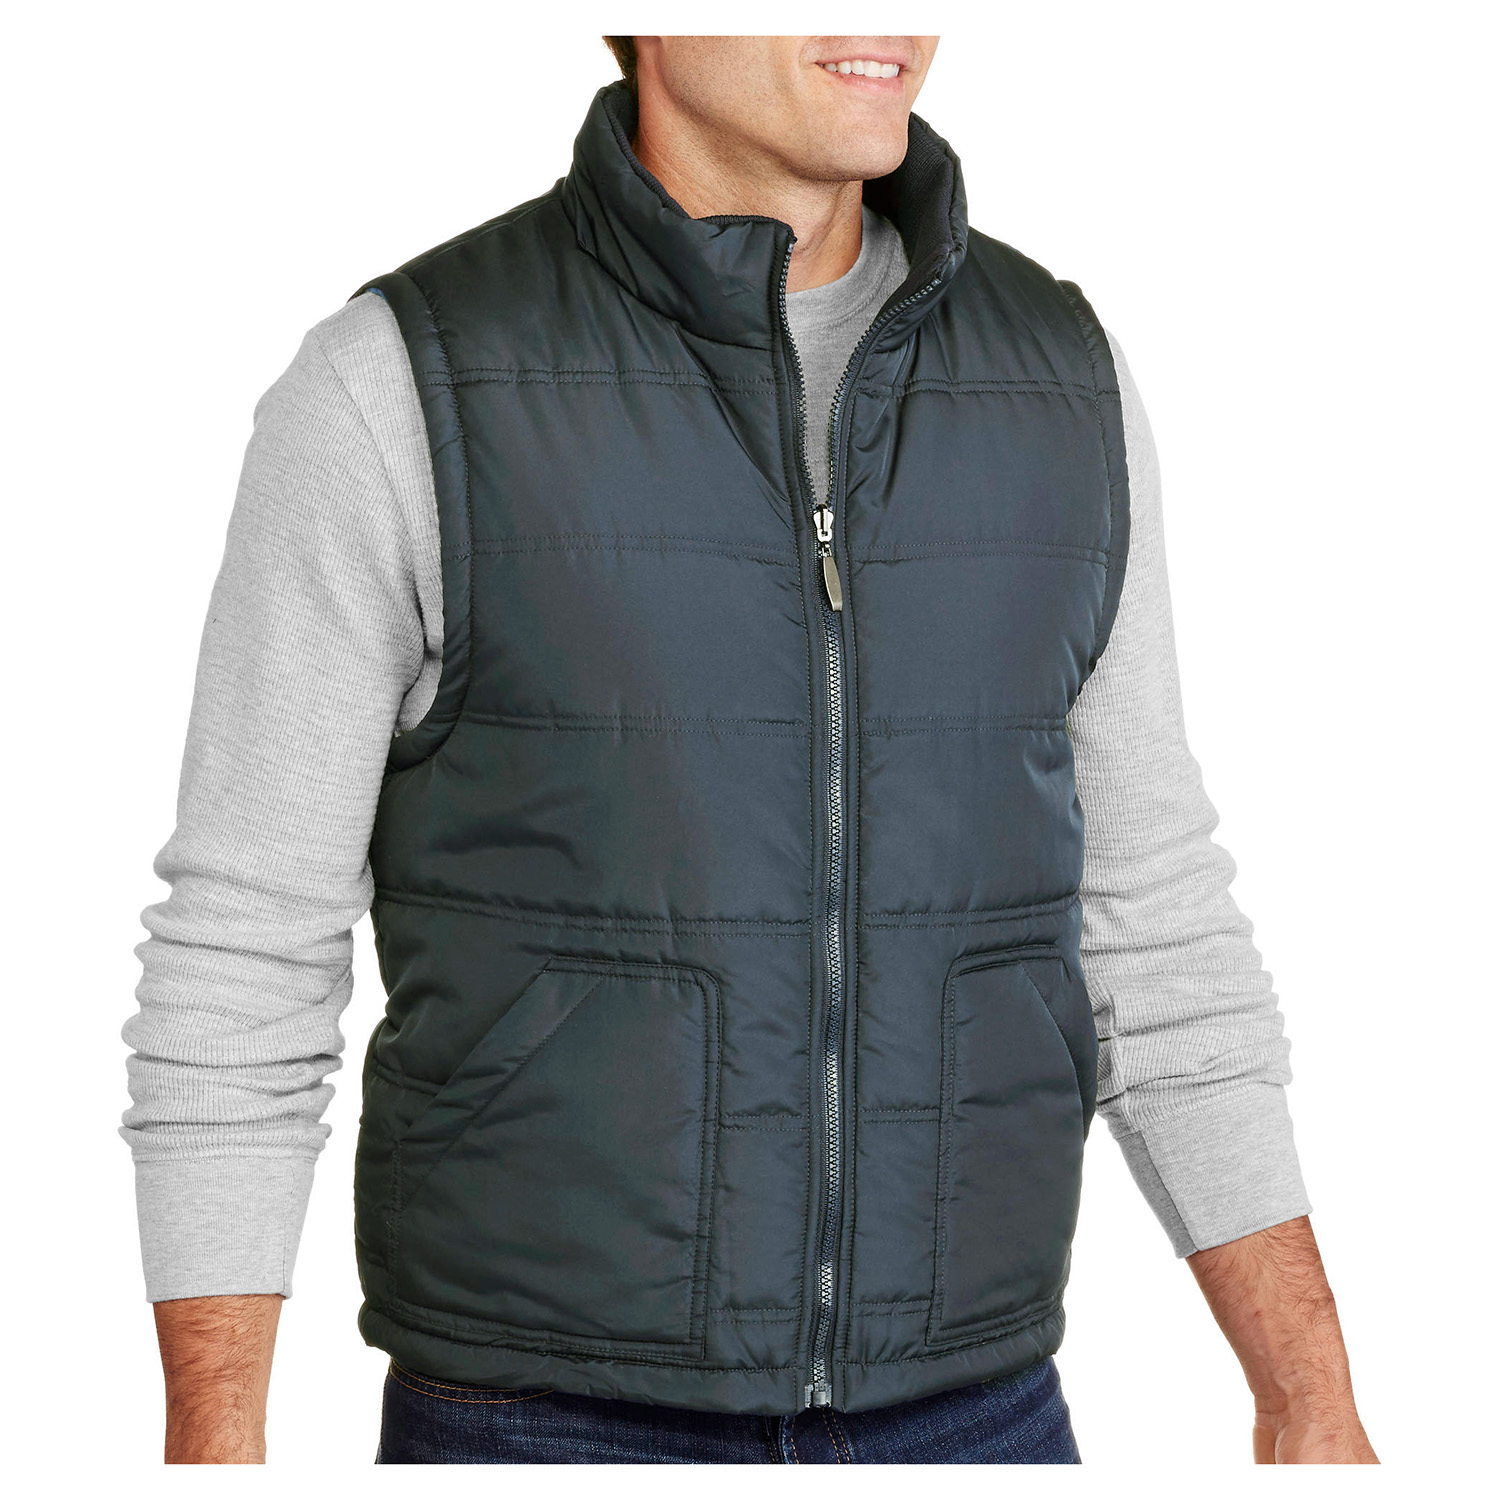 Shop for puffer vest men online at Target. Free shipping on purchases over $35 and save 5% every day with your Target REDcard.